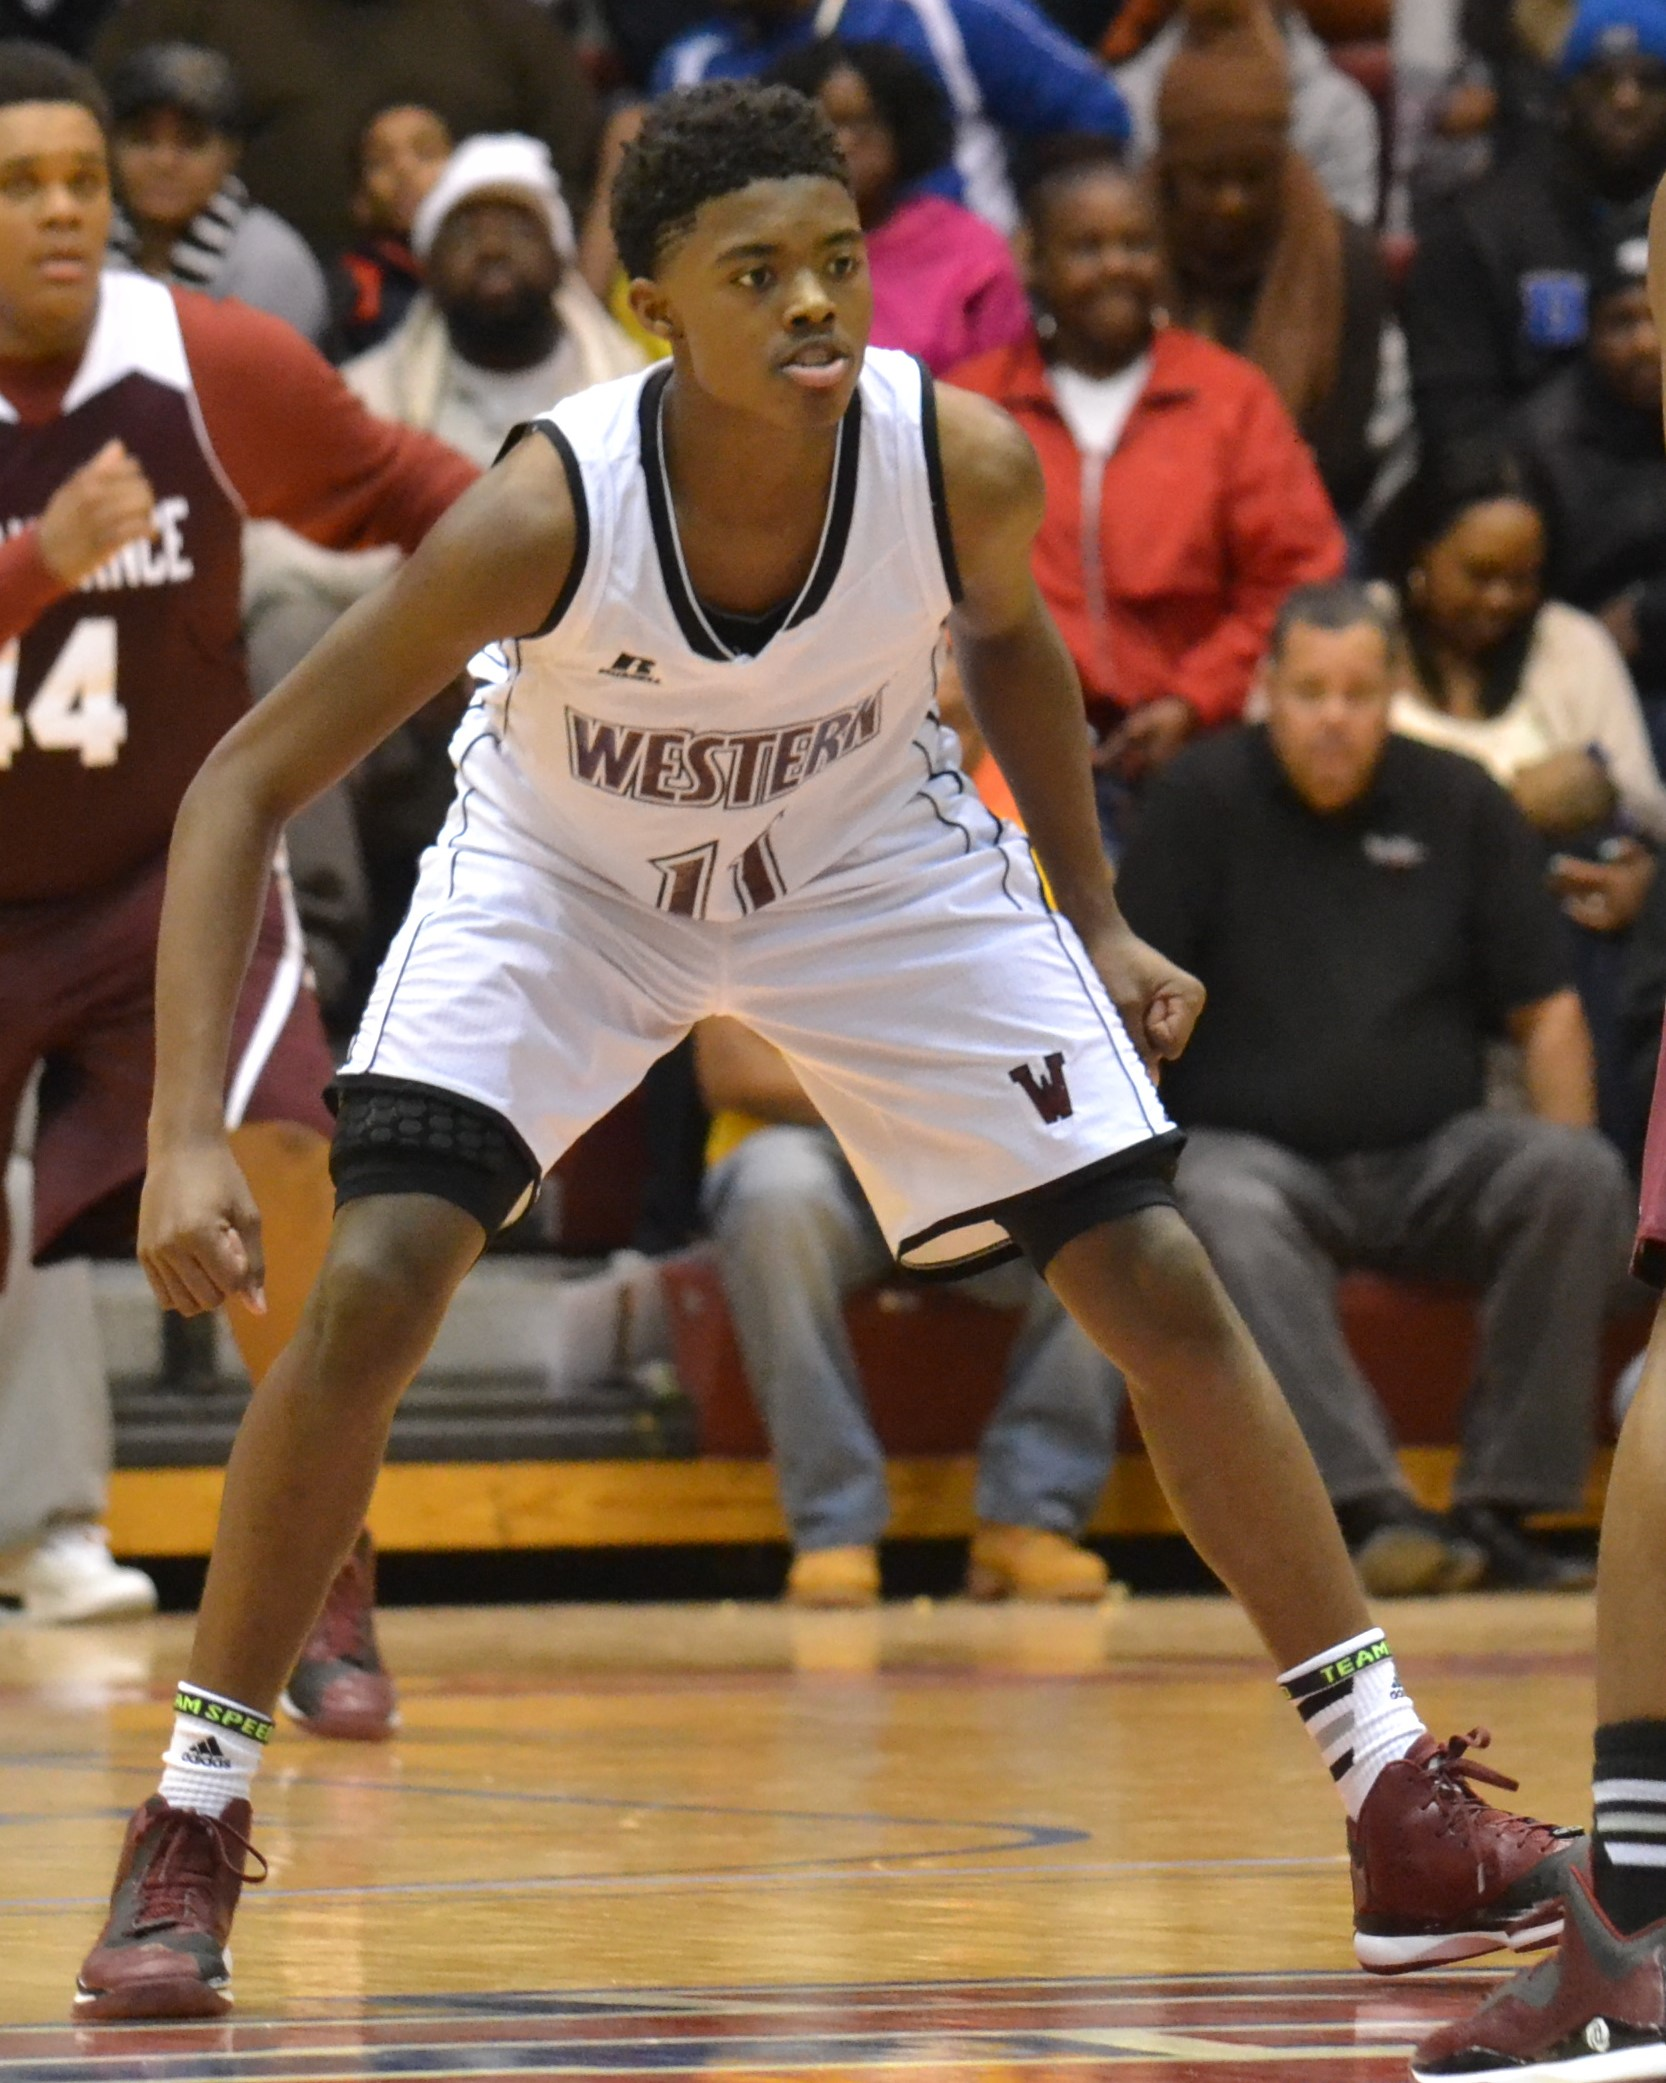 Detroit Western's Brailen Neely looks like the next small guard who will excel at Oakland.